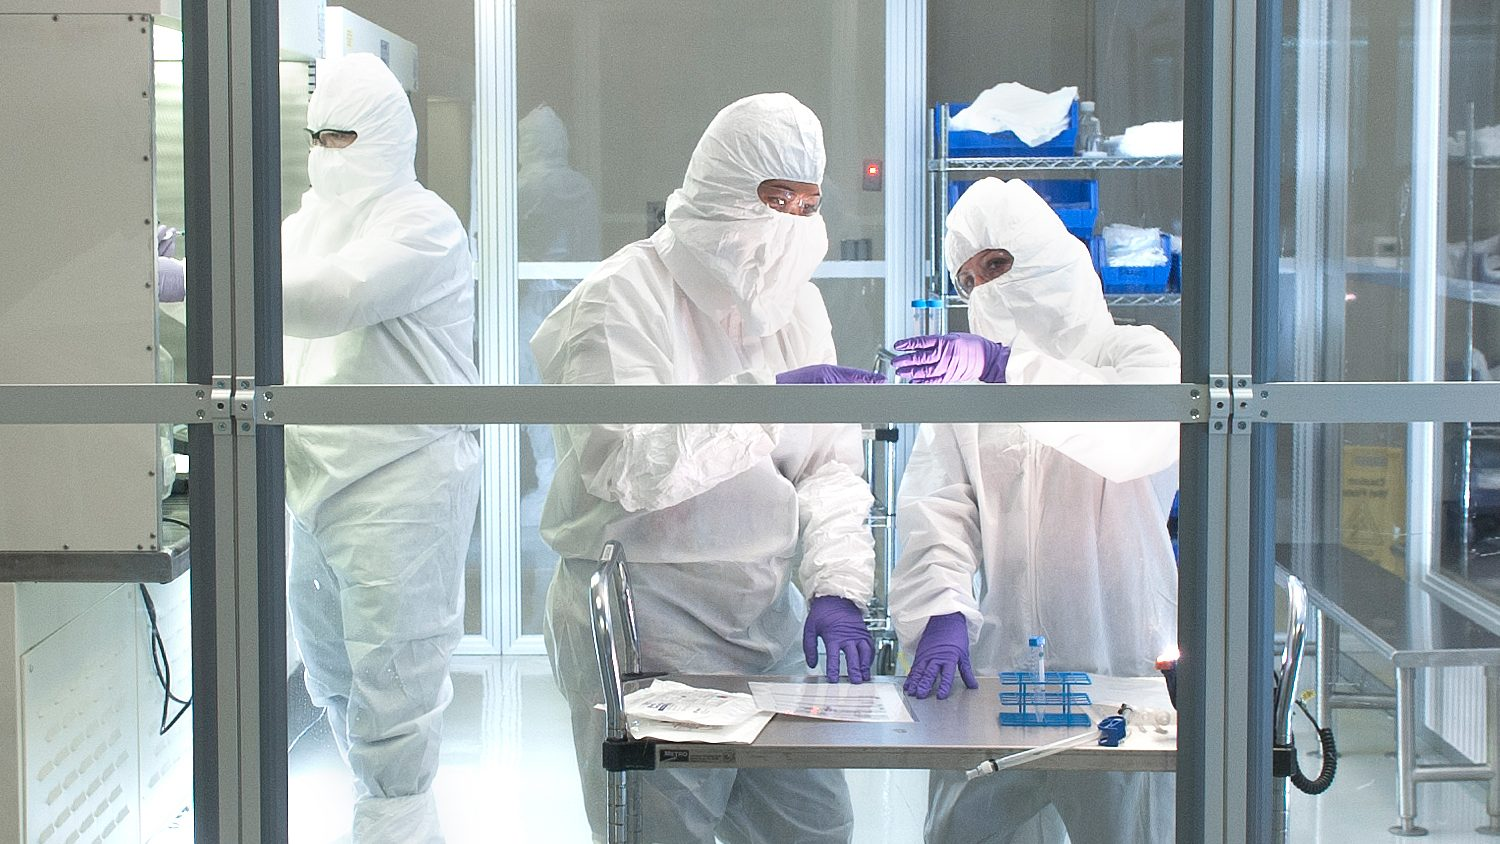 Researchers work in clean room